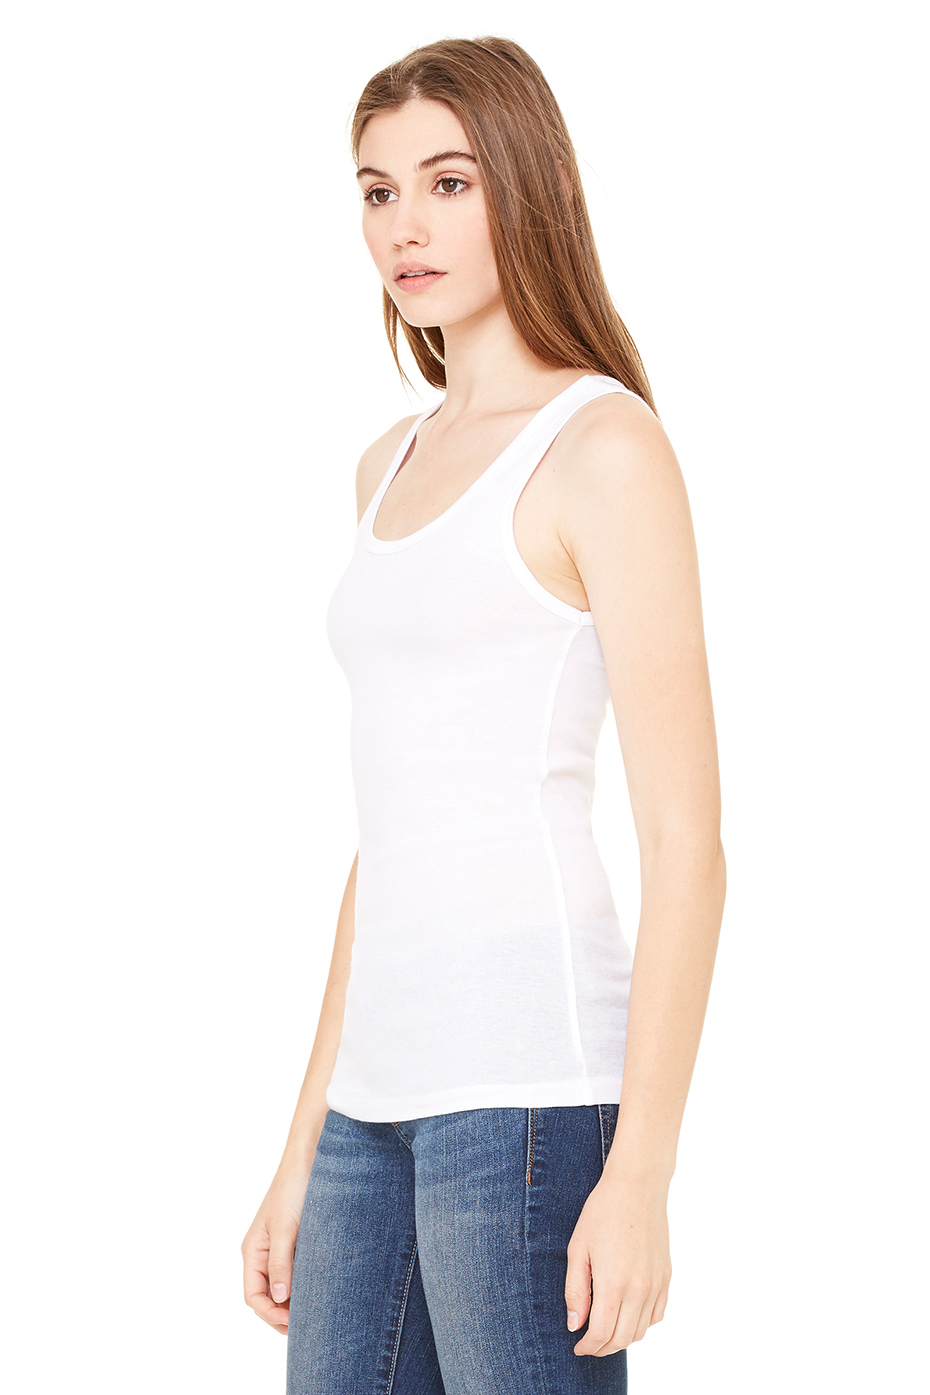 578c172ad5cbb6 8780 Women s Sheer Mini Rib Tank. Previous